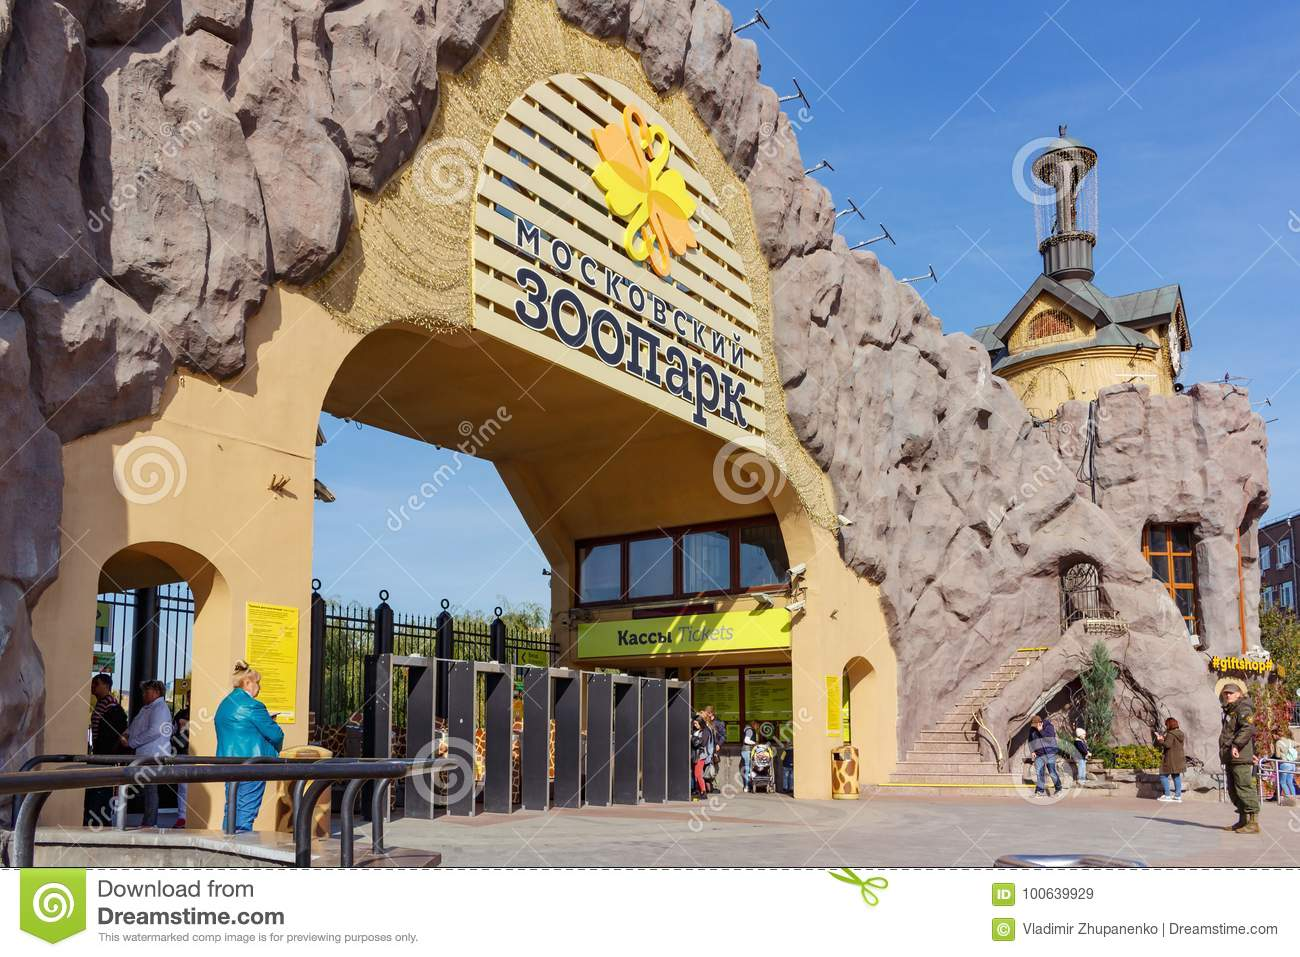 MOSCOW, RUSSIA - September 25, 2017: The main entrance to Moscow zoo